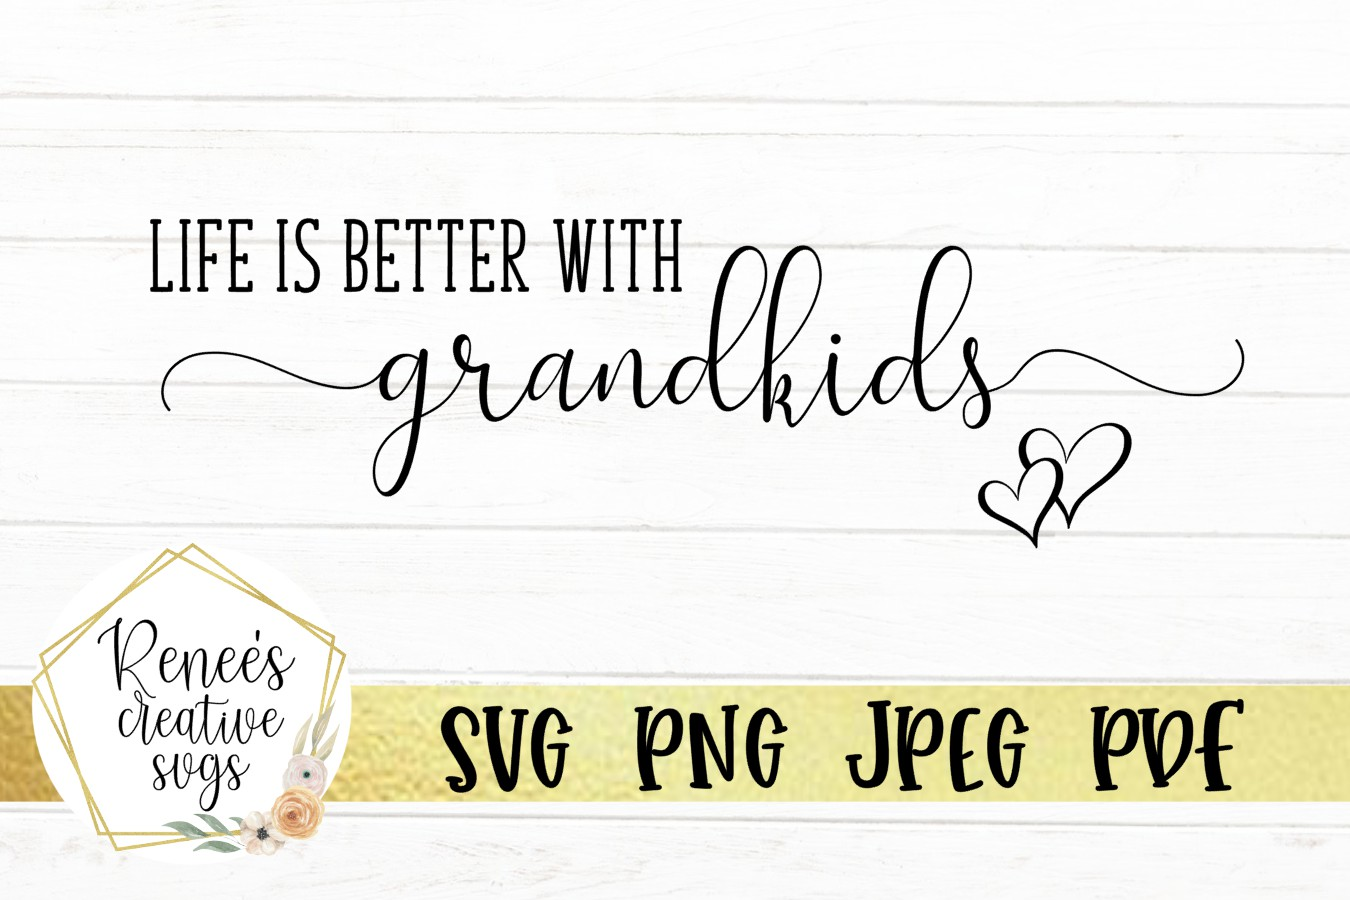 Life is better with grandkids  GrandKids SVG   SVG Files example image 2